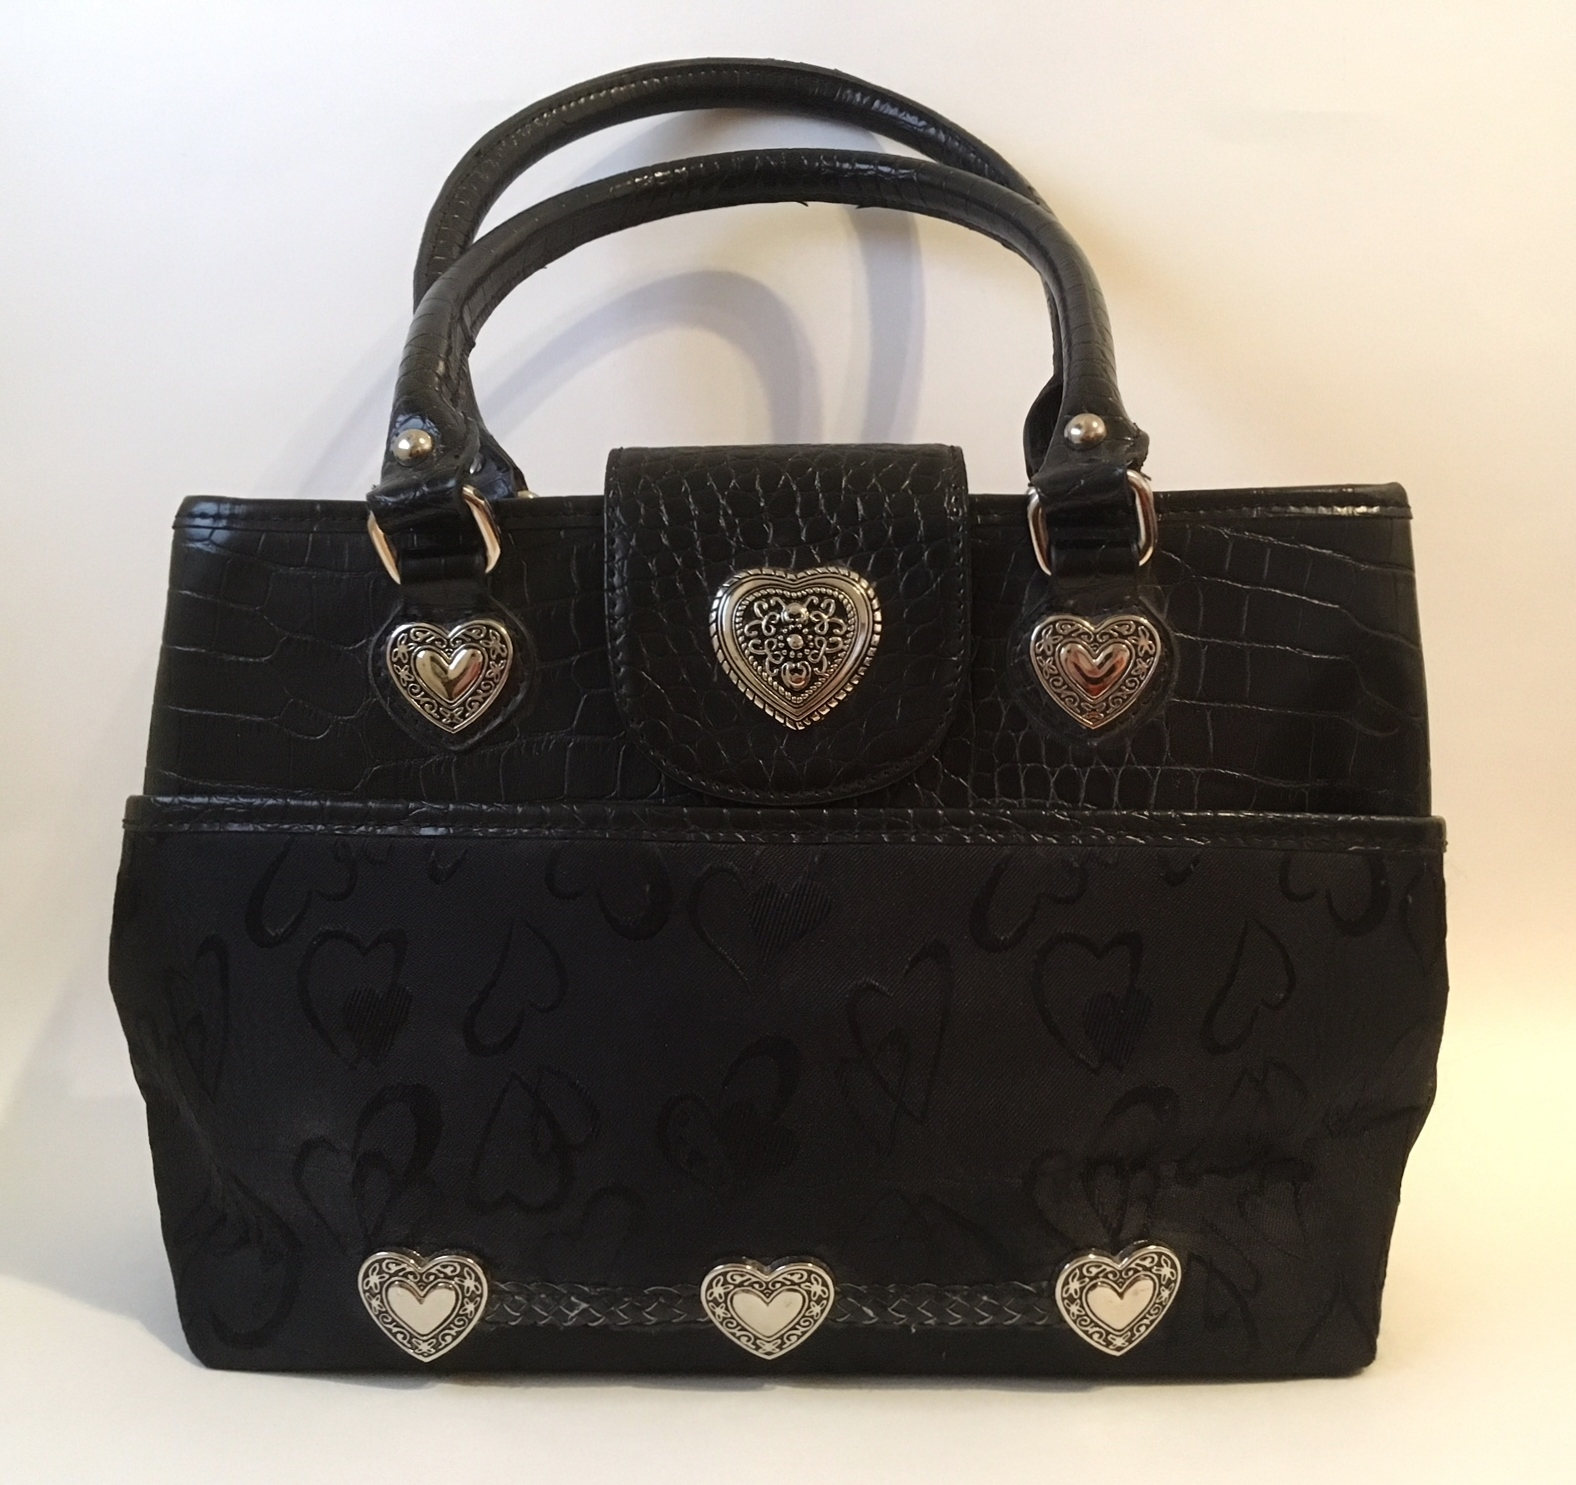 Purse black heart fabric leather  1  45  4.50